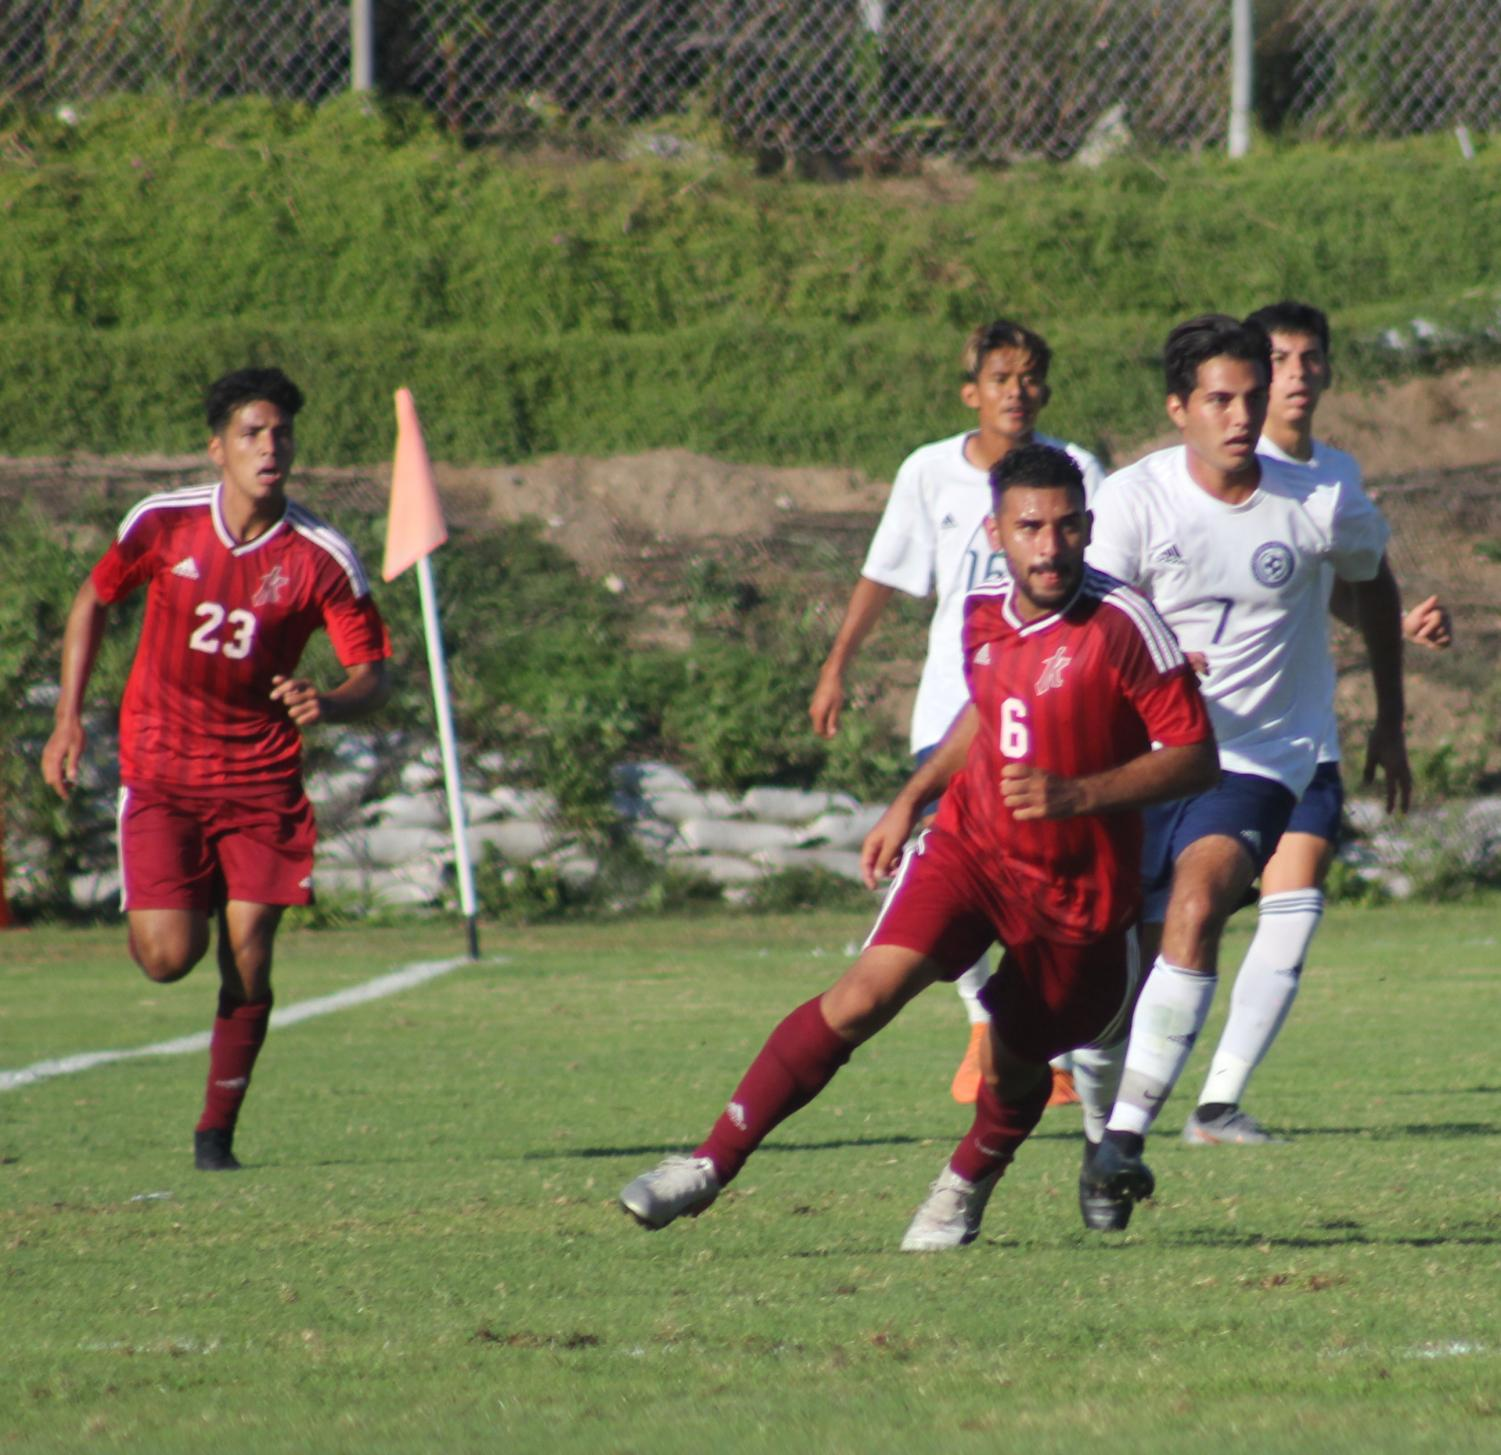 Christian Velasquez (6) and Jordy Robolledo (23) during a match against San Diego Mesa Oct. 8. Photo by Sonny Garibay